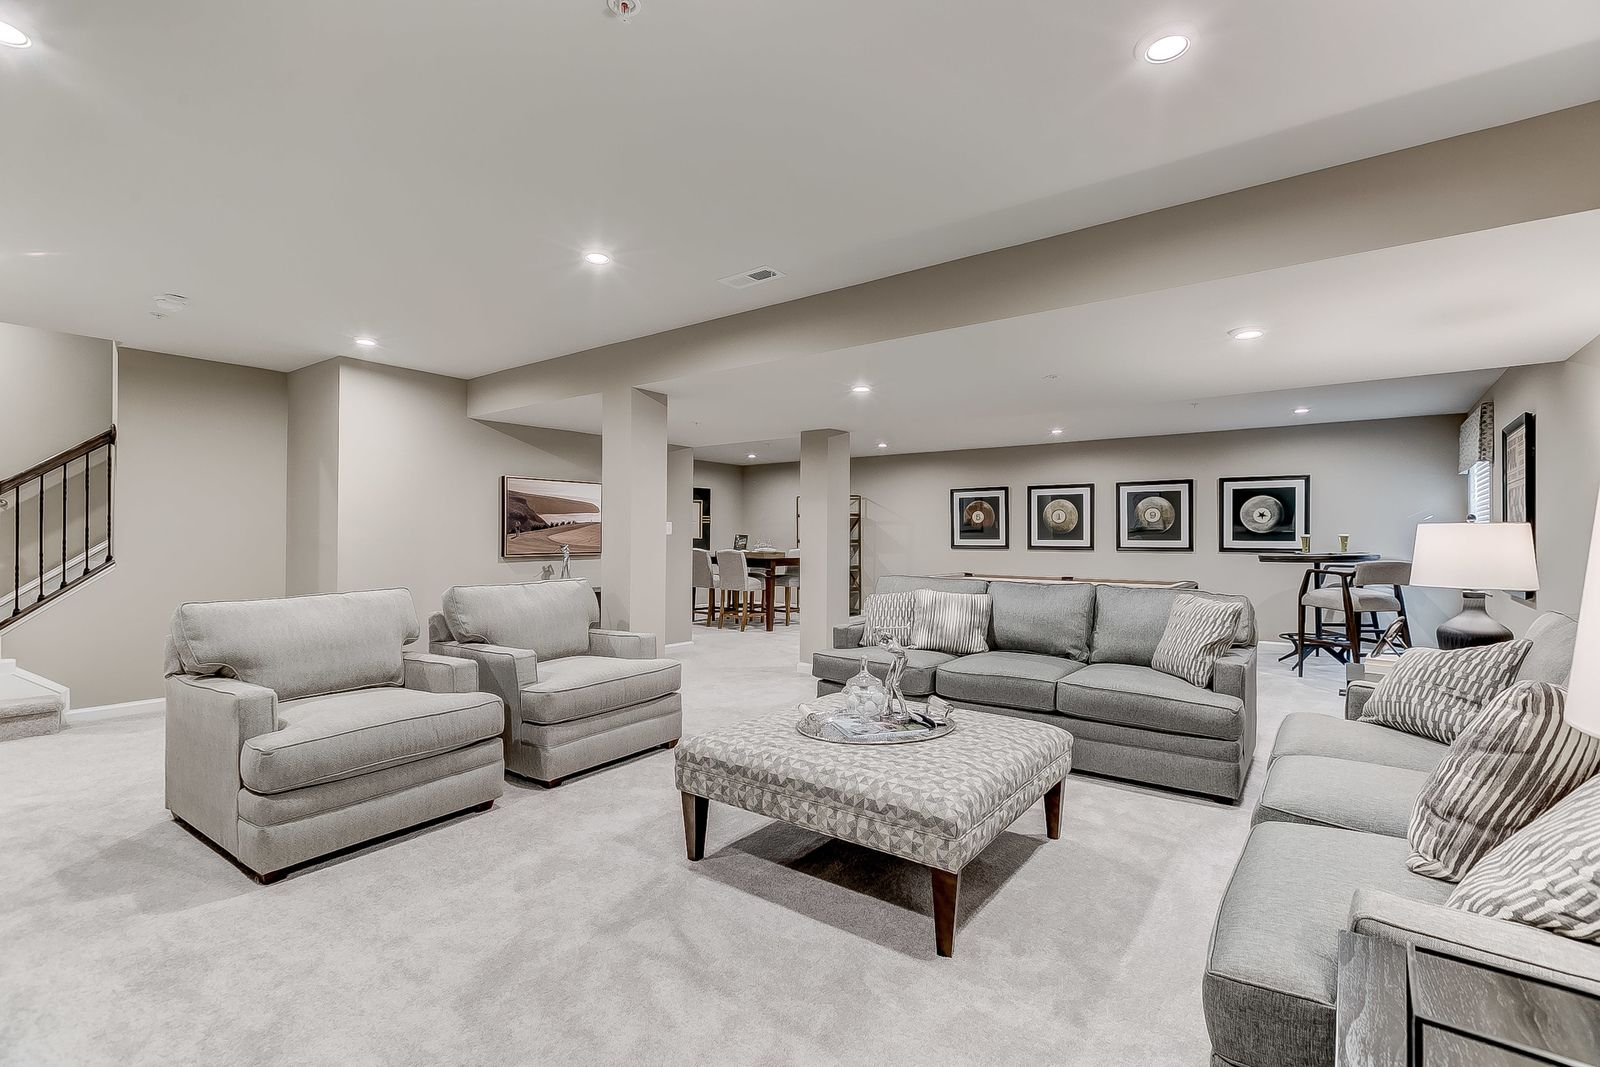 Living Area featured in the Saint Lawrence By Ryan Homes in Philadelphia, PA